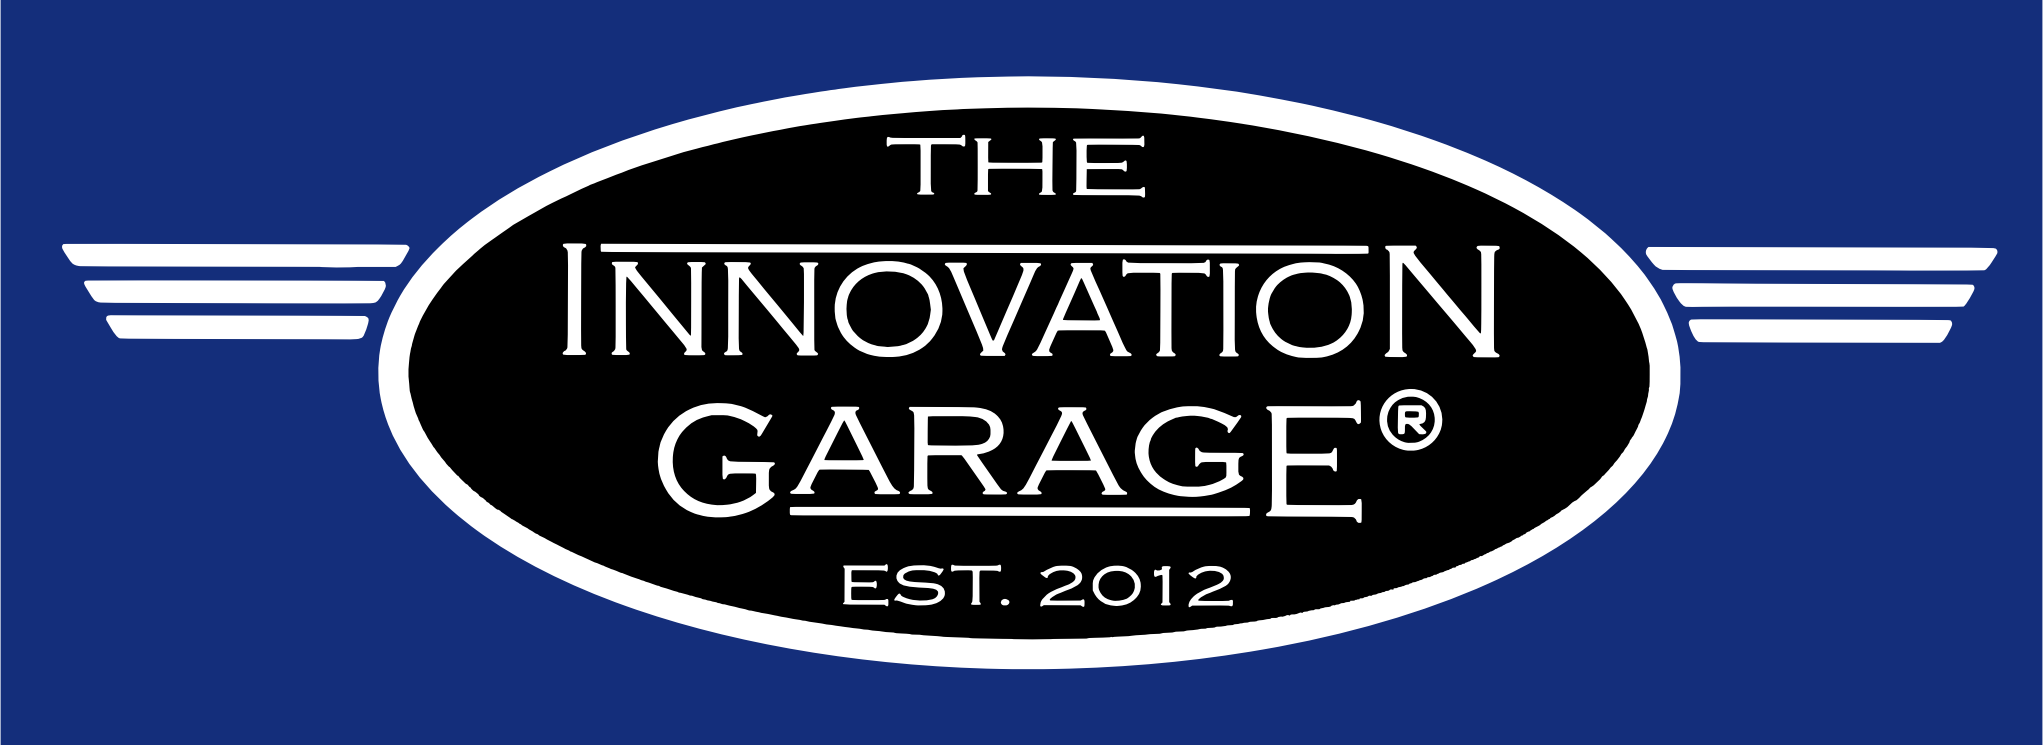 innovation-garage